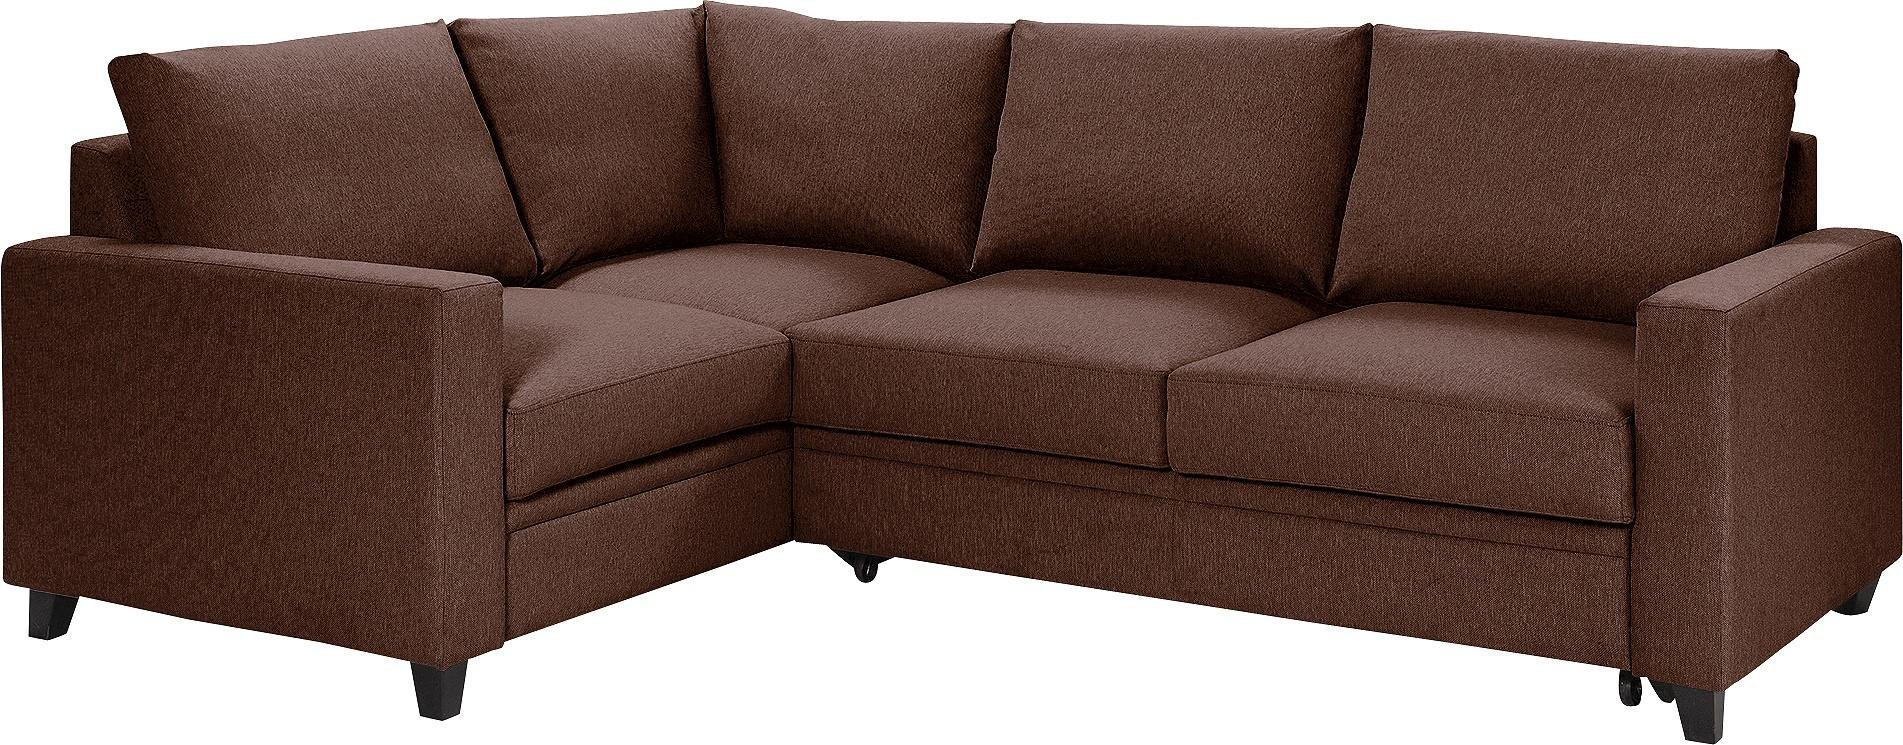 Argos Home Seattle Left Corner Fabric Sofa Bed - Brown